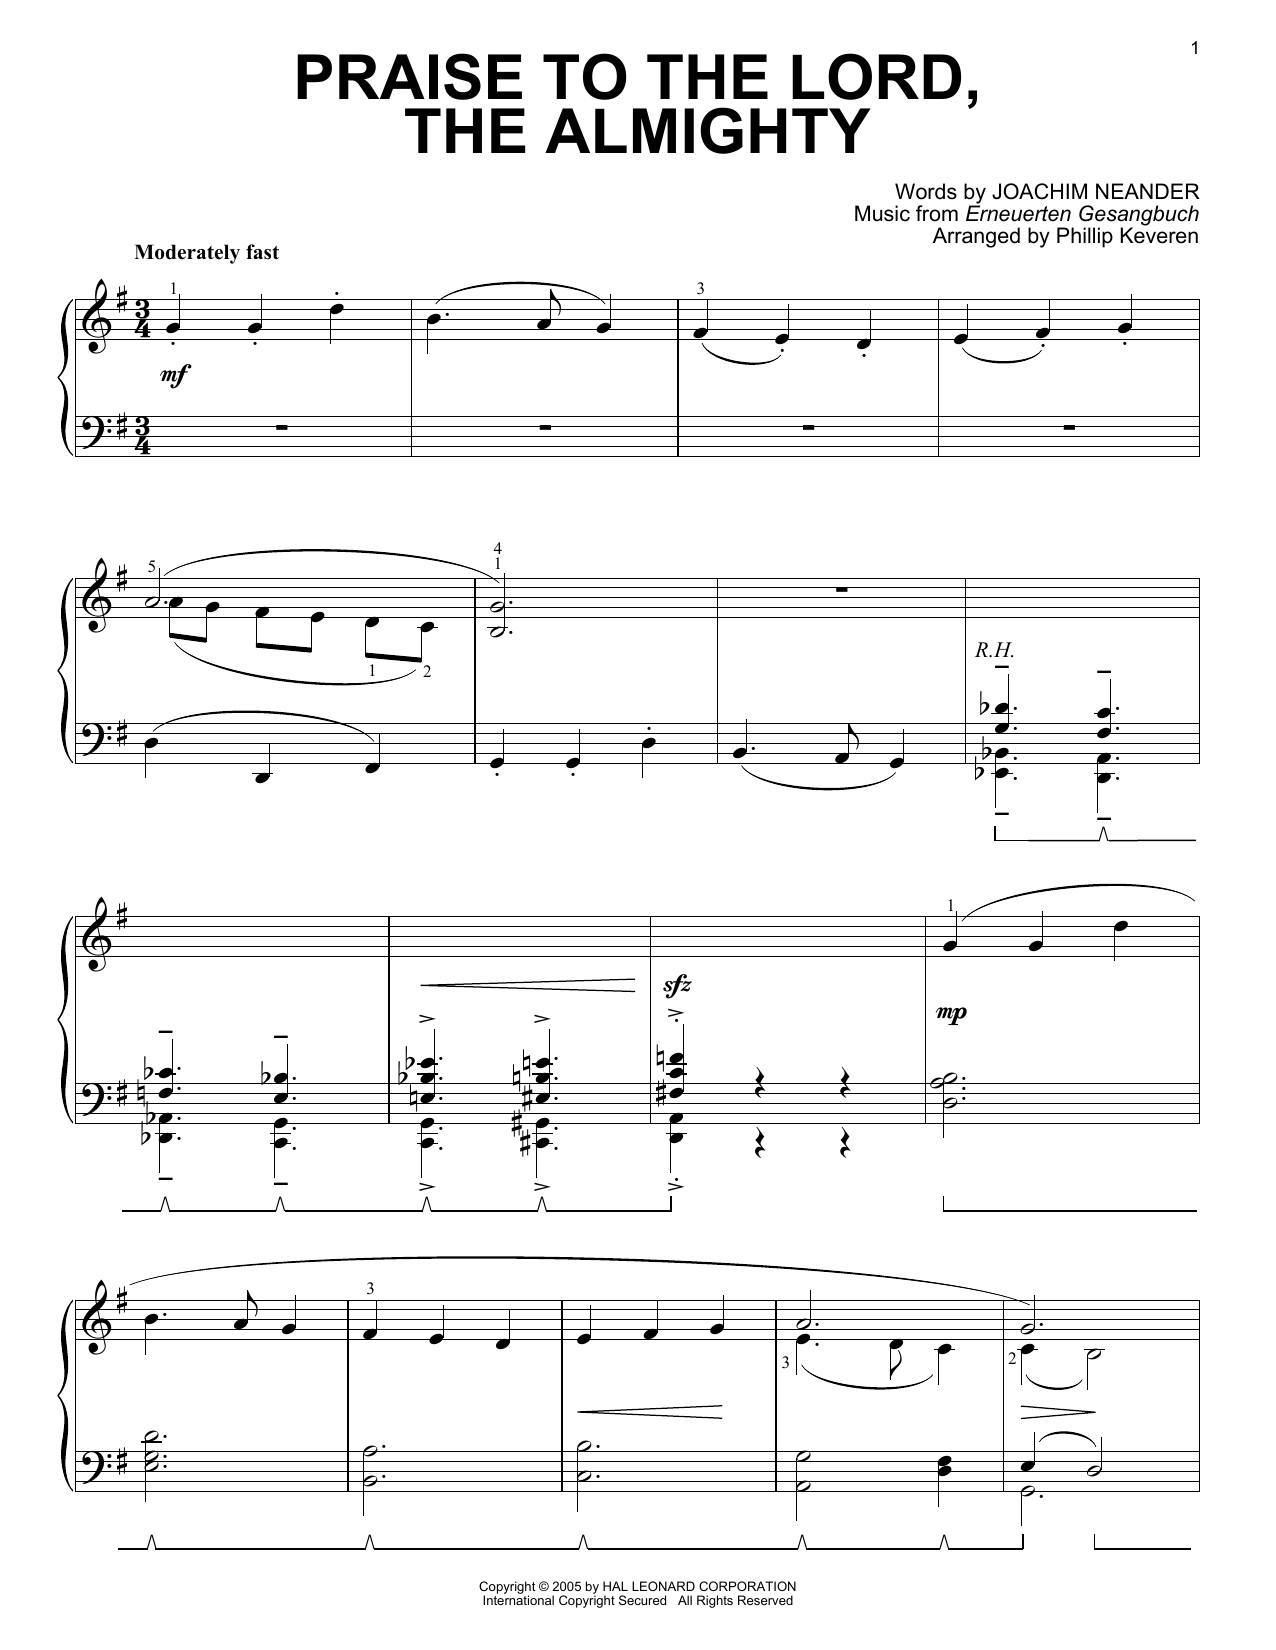 Joachim Neander Praise To The Lord, The Almighty [Jazz version] (arr. Phillip Keveren) sheet music notes printable PDF score